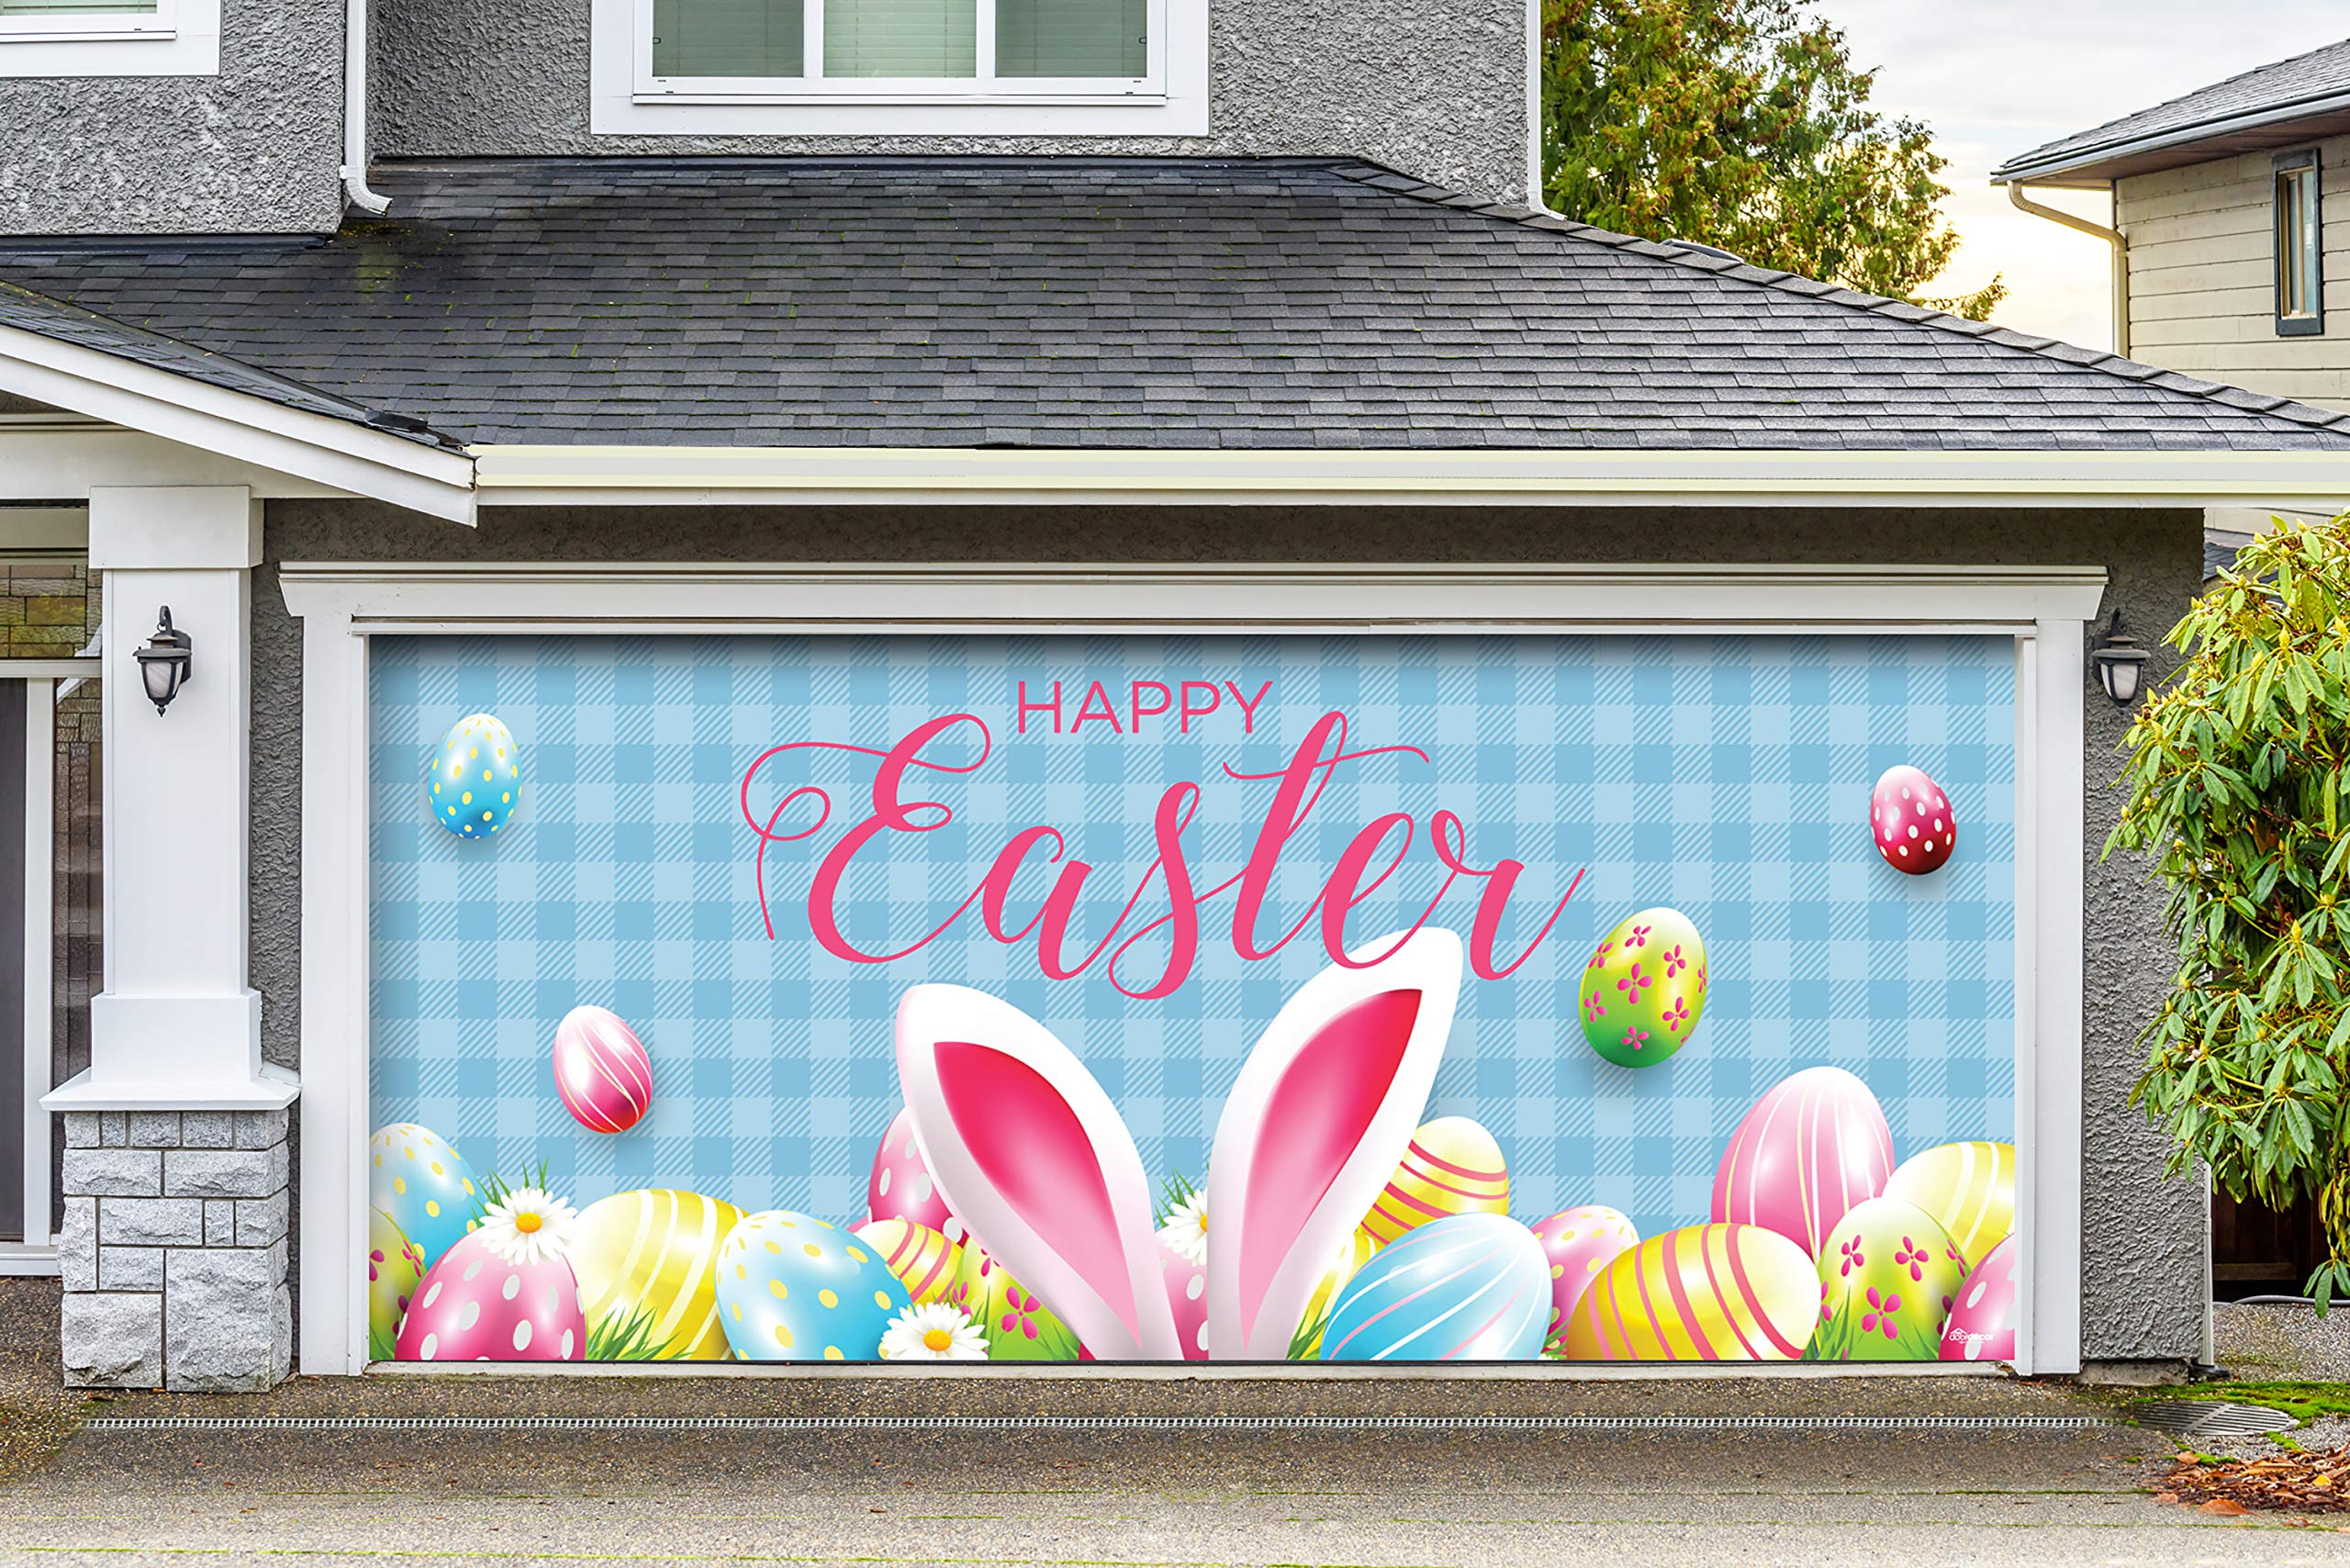 Victory Corps Happy Easter Bunny Ears - Holiday Garage Door Banner Mural Sign Décor 7'x 16' Car Garage - The Original Holiday Garage Door Banner Decor